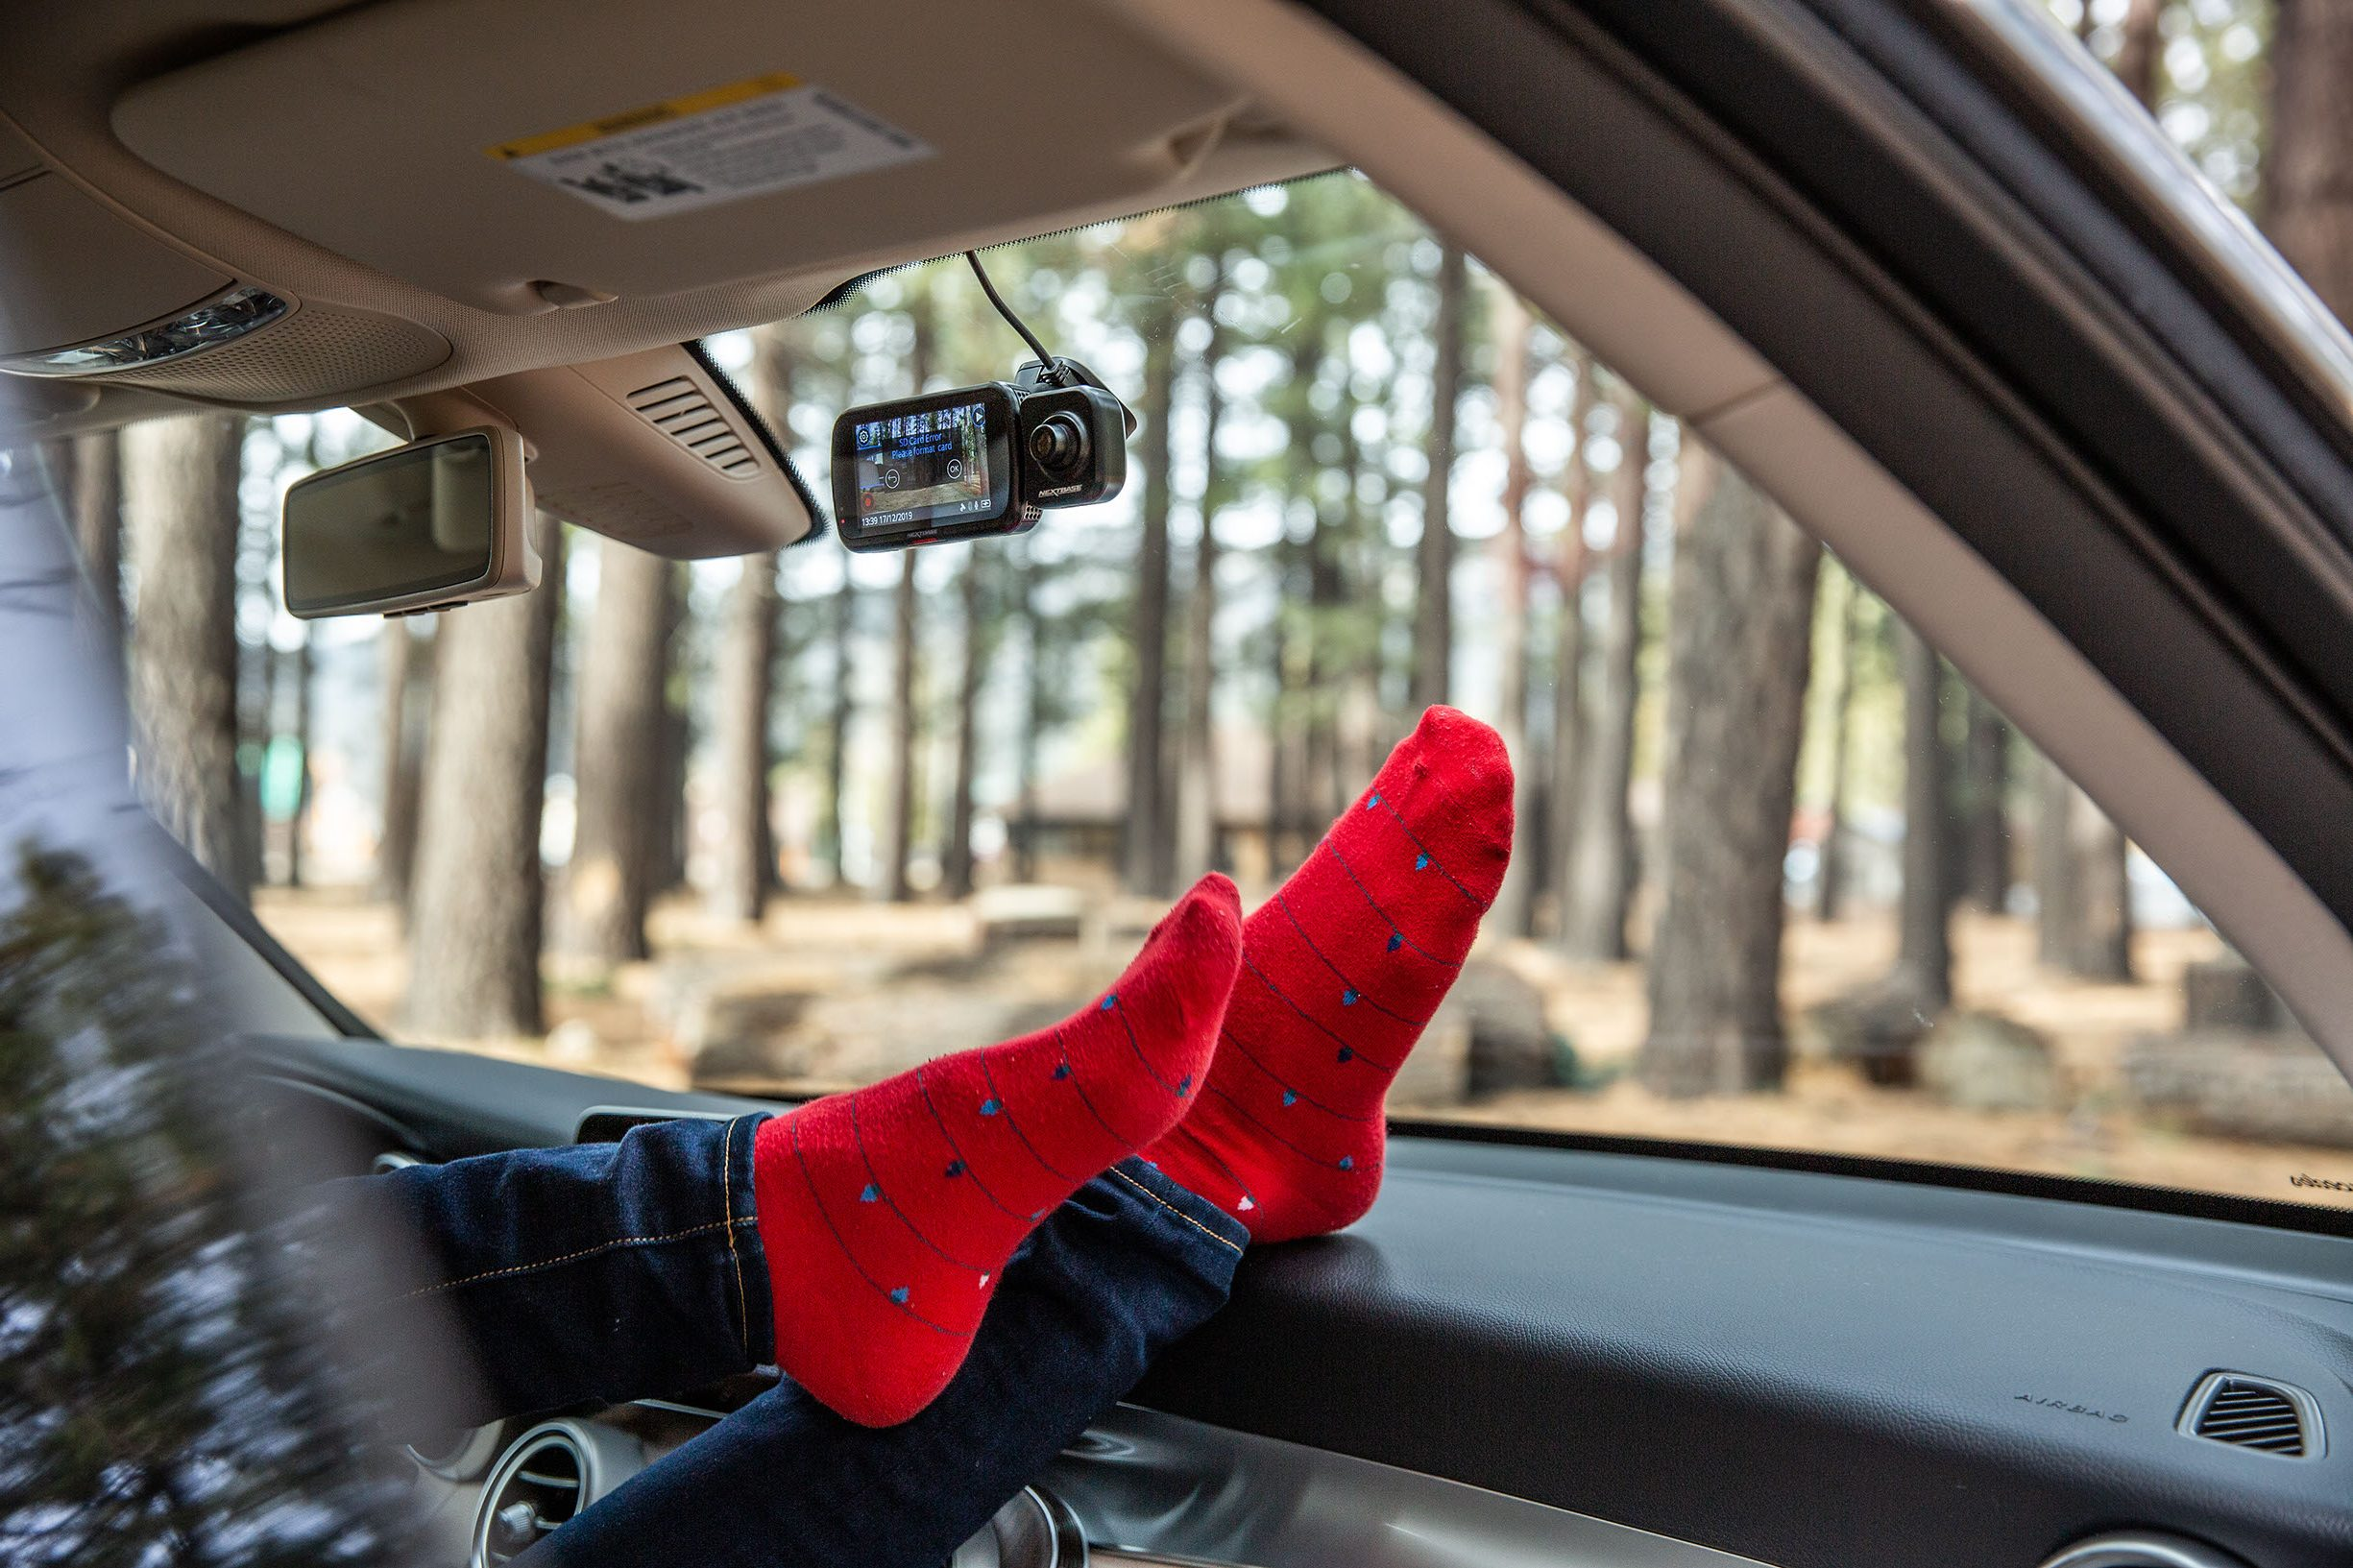 SELECTS121819  Page 088 Image 0001 rotated Nextbases 4K Dash Cam With Emergency SOS Now Available